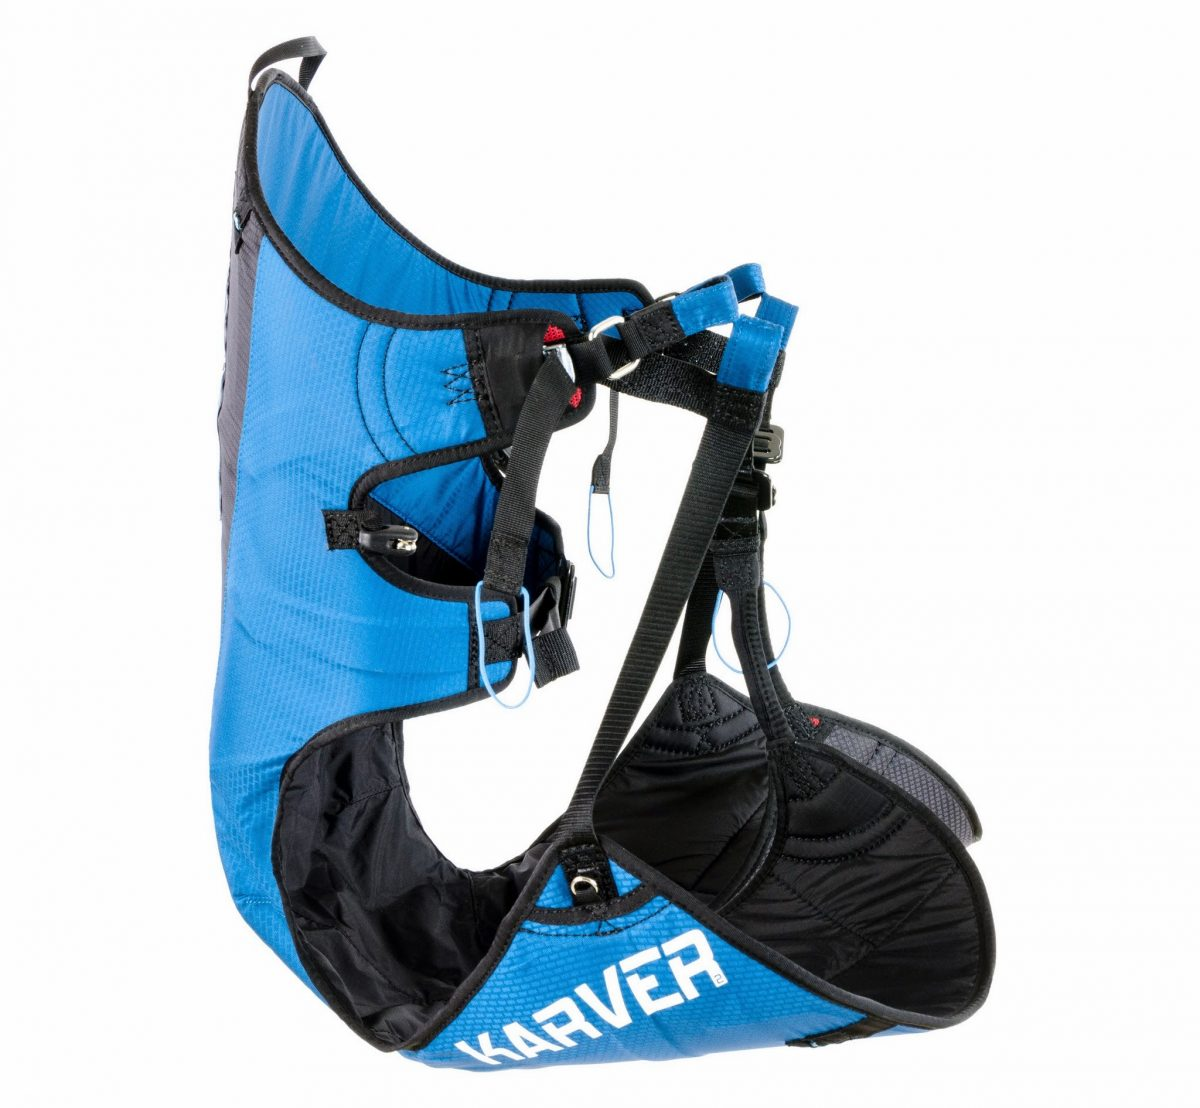 Kortel Design Karver II paragliding harness in South Africa by XC Paragliding